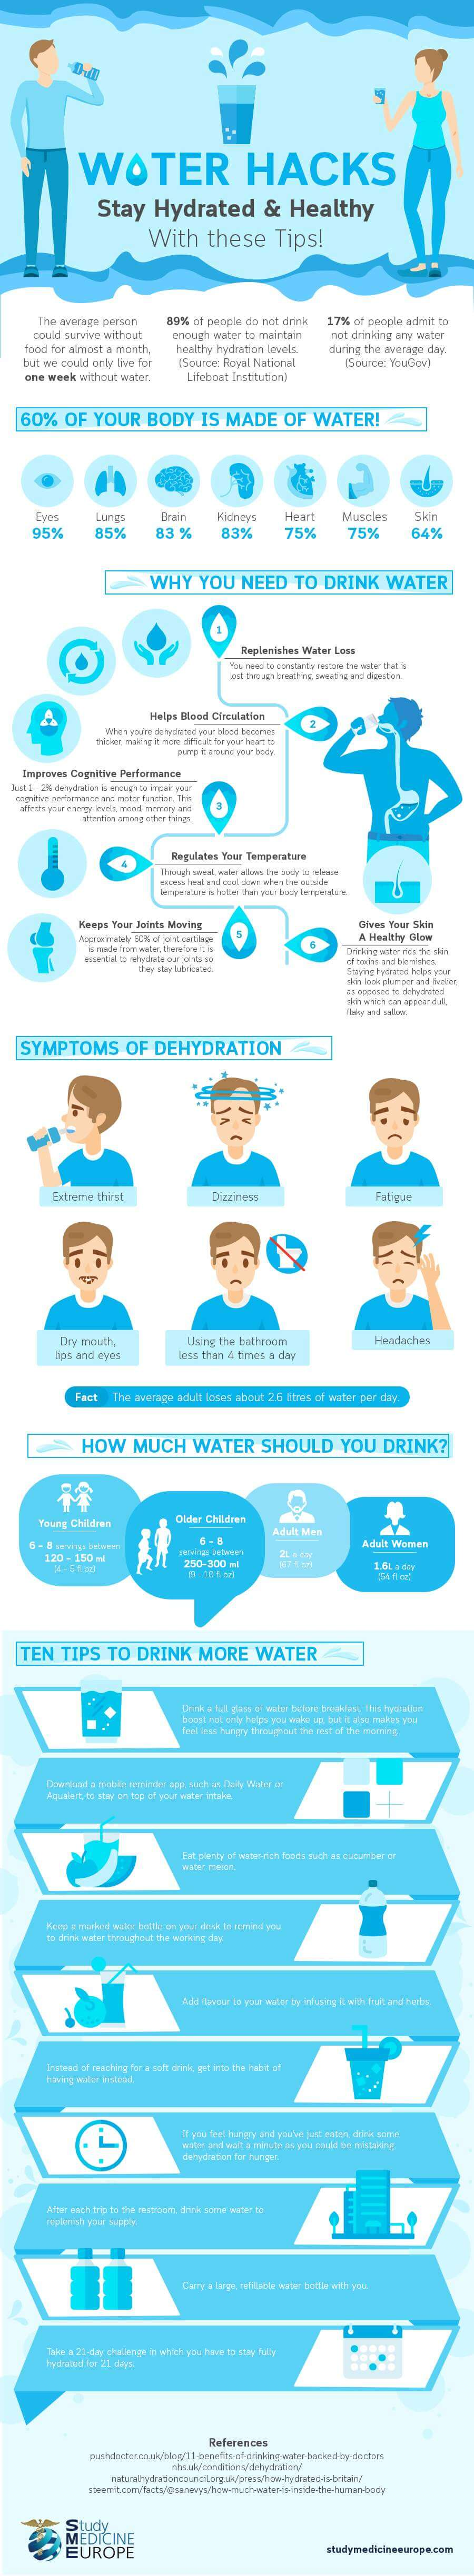 Water hacks to stay hydrated & healthy